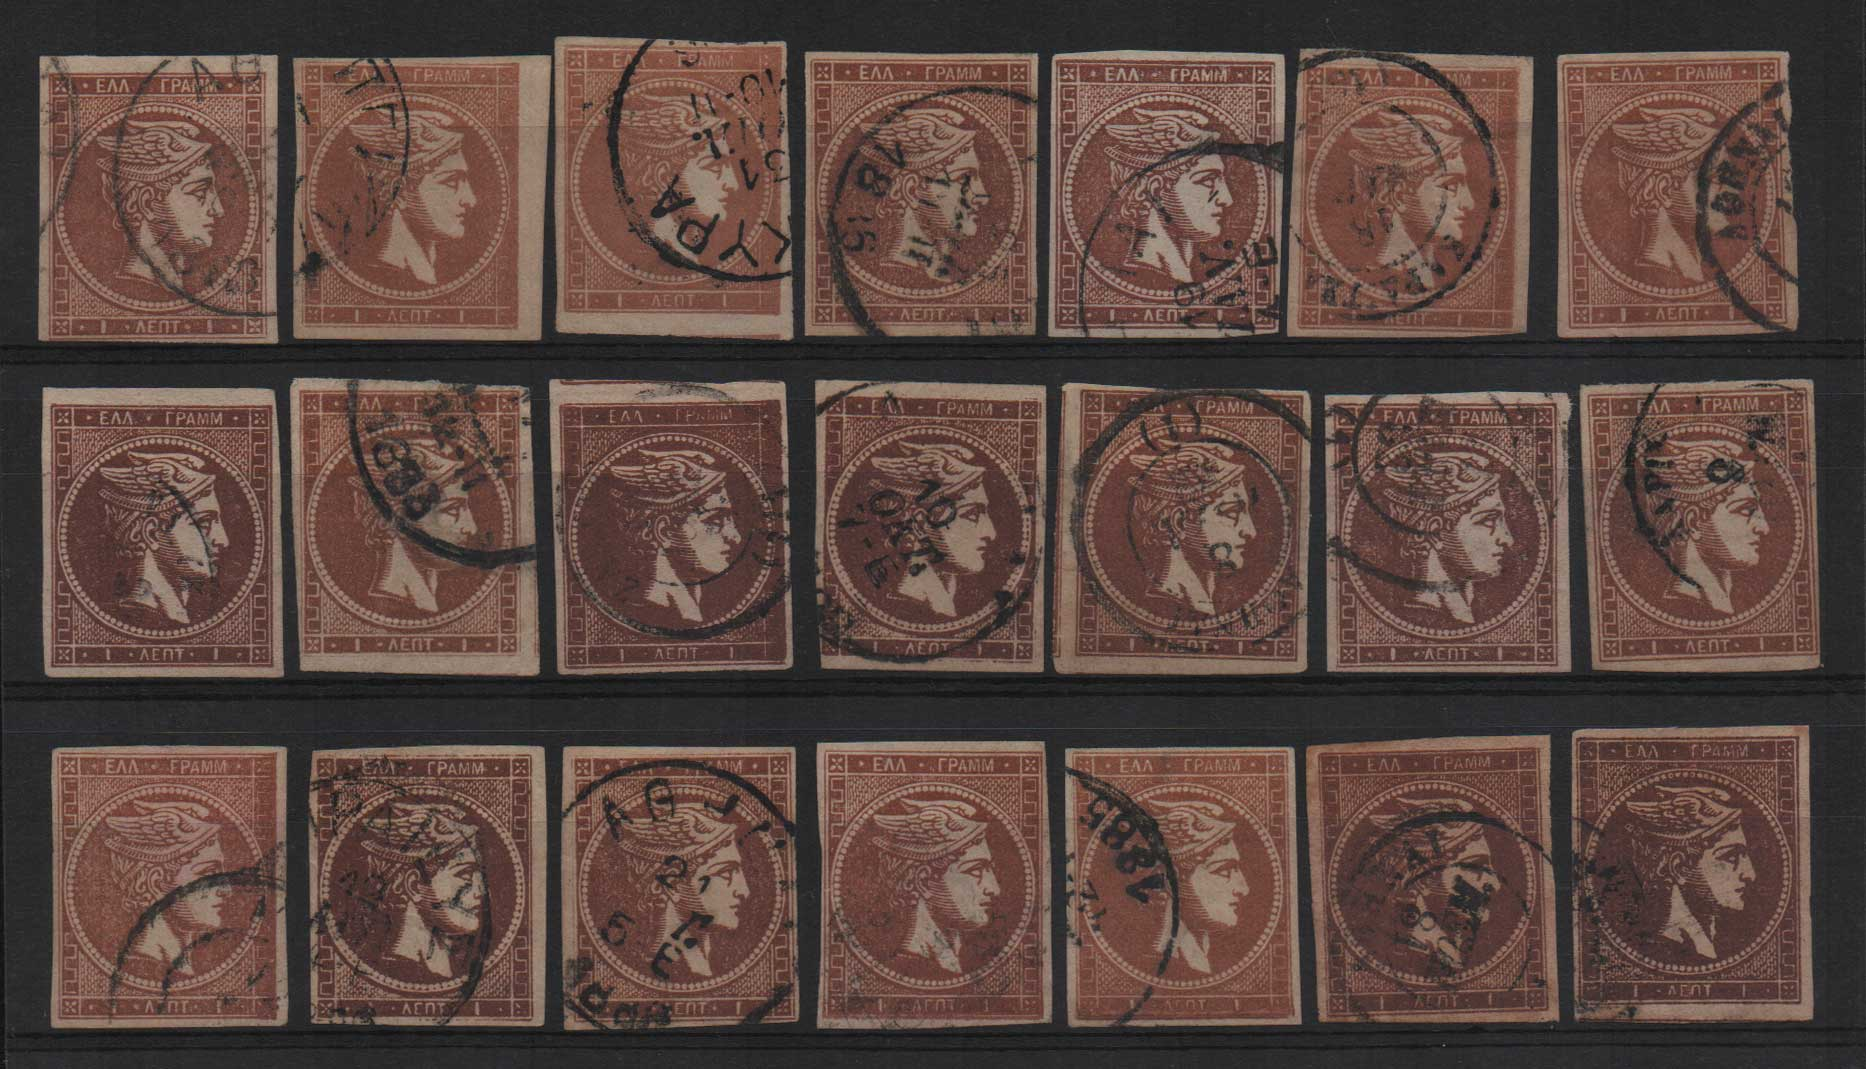 Lot 20 - -  LARGE HERMES HEAD large hermes head -  Athens Auctions Public Auction 68 General Stamp Sale